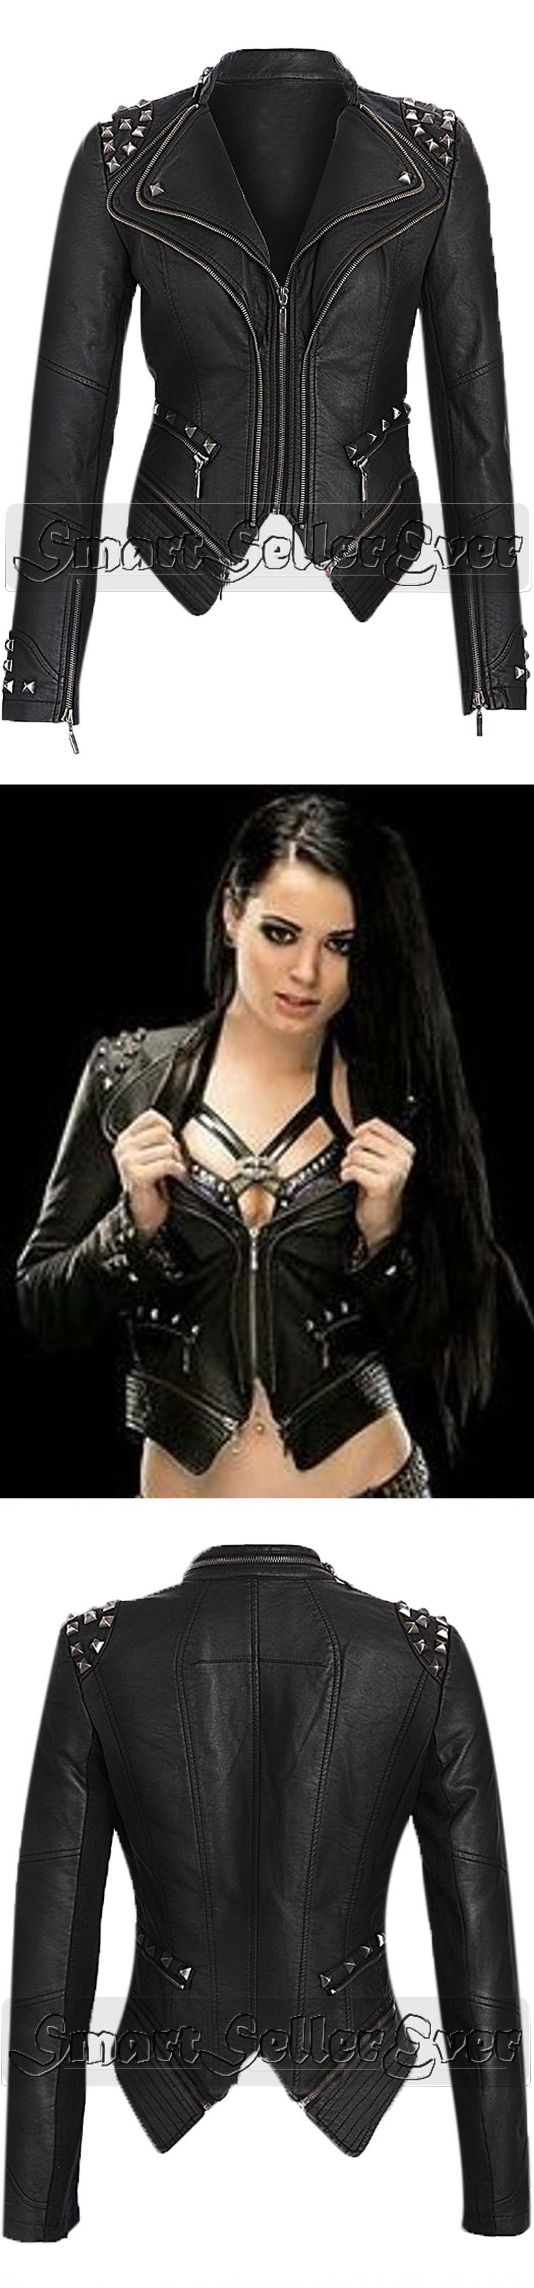 "For Fan's Professional Wrestler and Actress Saraya-Jade Bevis ""PAIGE"". Smart Seller Created WWE Diva Paige NXT Black Leather Studded Biker Women Jacket. Made from 100% Real Leather You can Wear This Impressive Women's Jacket in All Season, Available at Our Online Store.  #sarayajadebevis #wrestler #paige #girls #girlsfashion #girlsjacket #womenfashion #hot #sexy #fashion #beautiful #wear #femalejackets #awesome #shopping #parties #clubs #nights #season #bikers #riding #stylish"